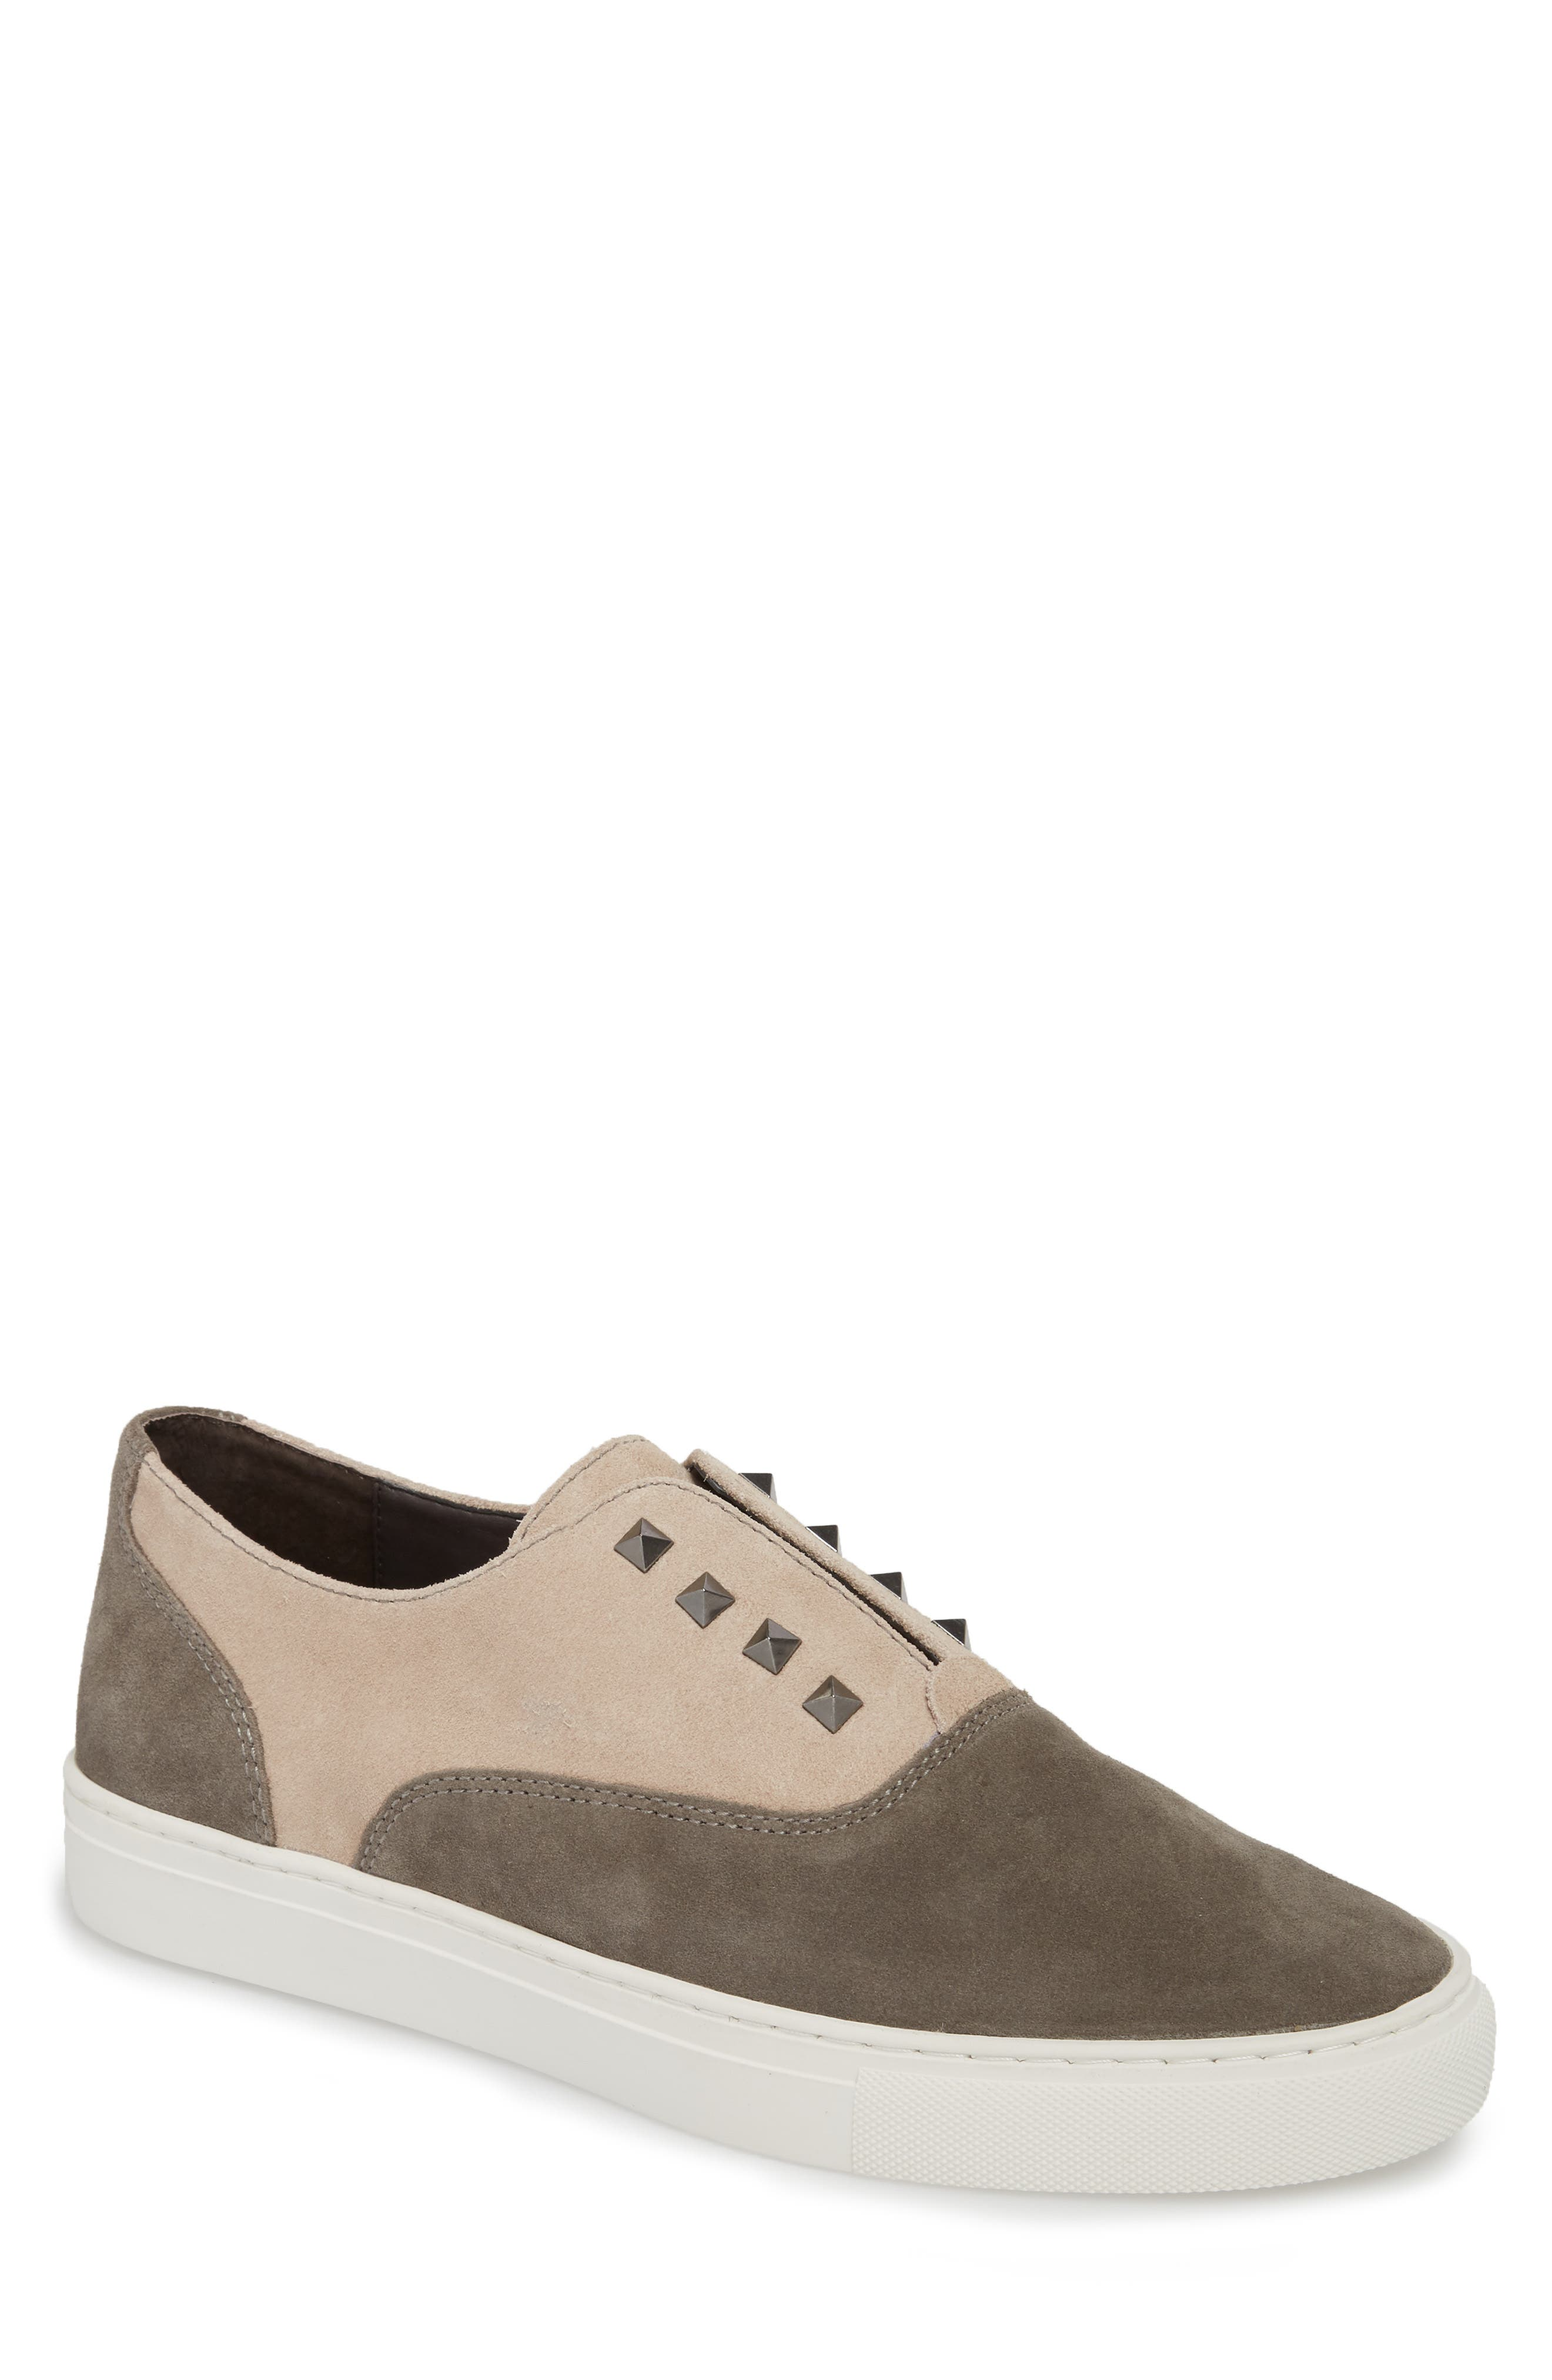 Aryo Studded Laceless Sneaker,                             Main thumbnail 1, color,                             Chocolate/ Sand Suede